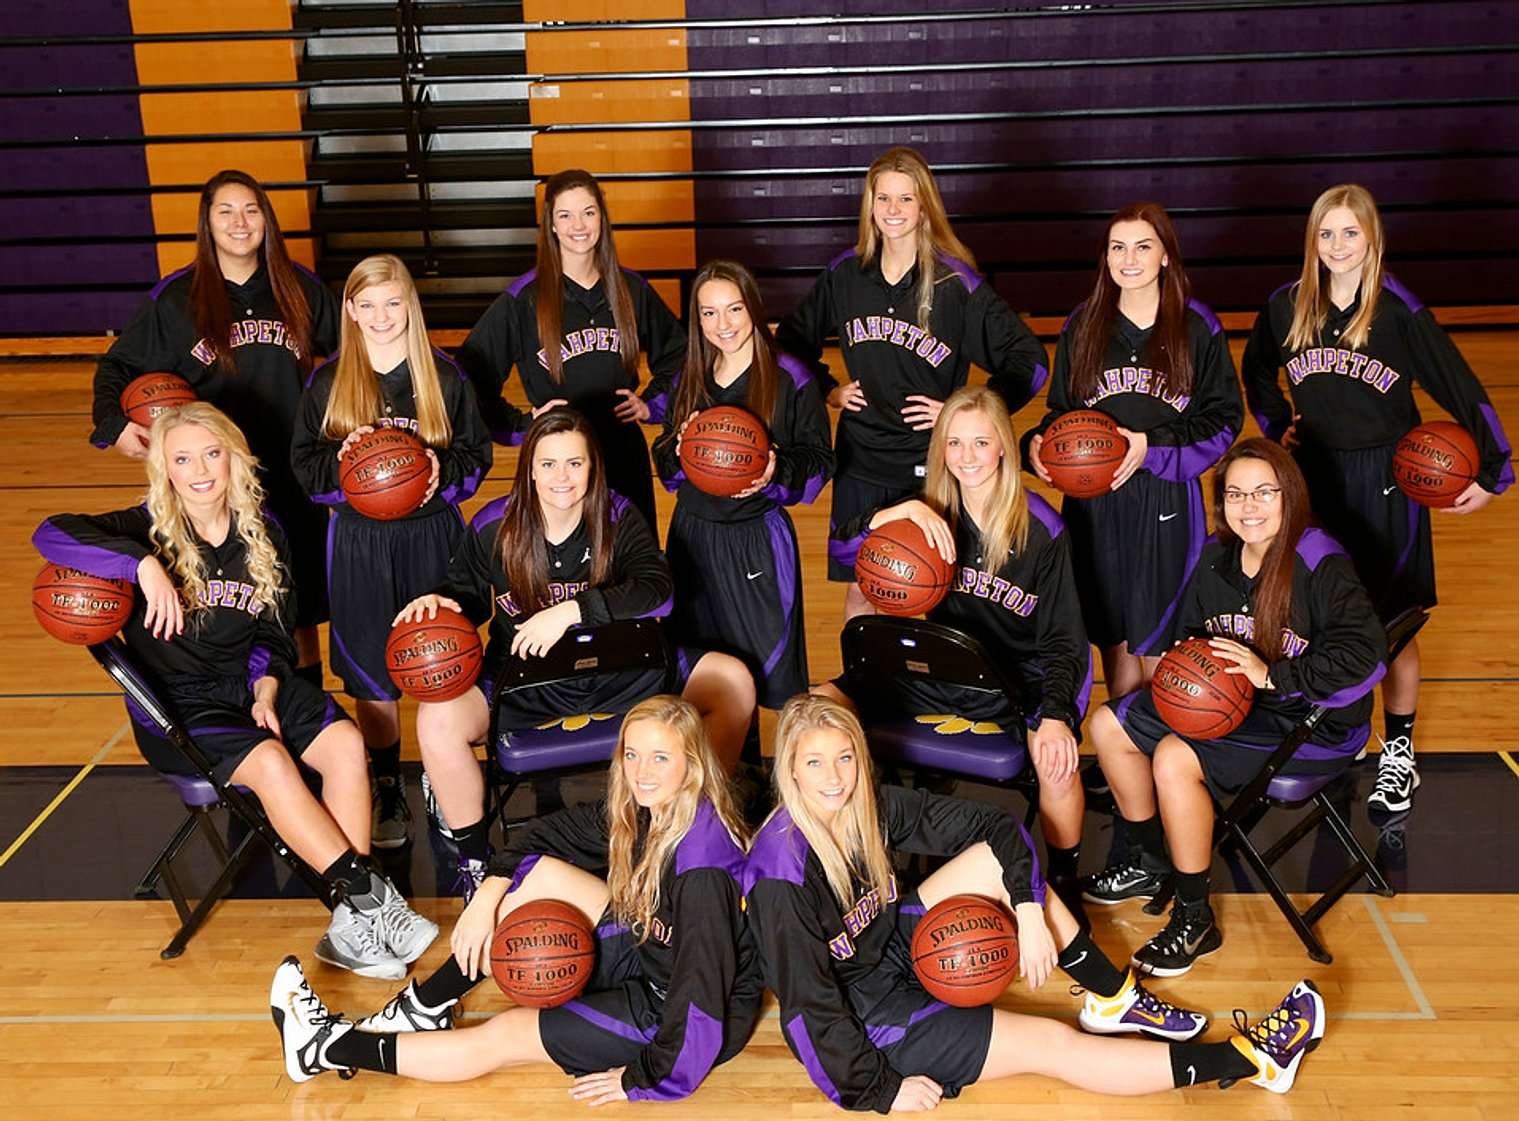 WHS_2015-16_Team_WebCover2_edited